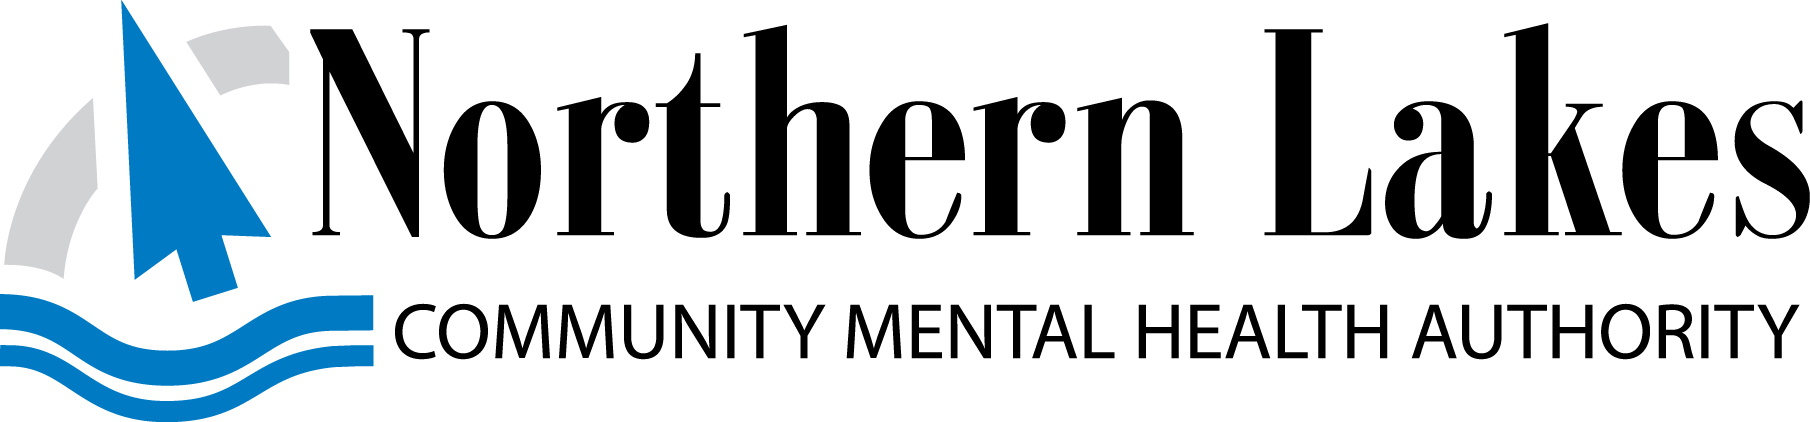 Northern Lakes Community Mental Health Authority